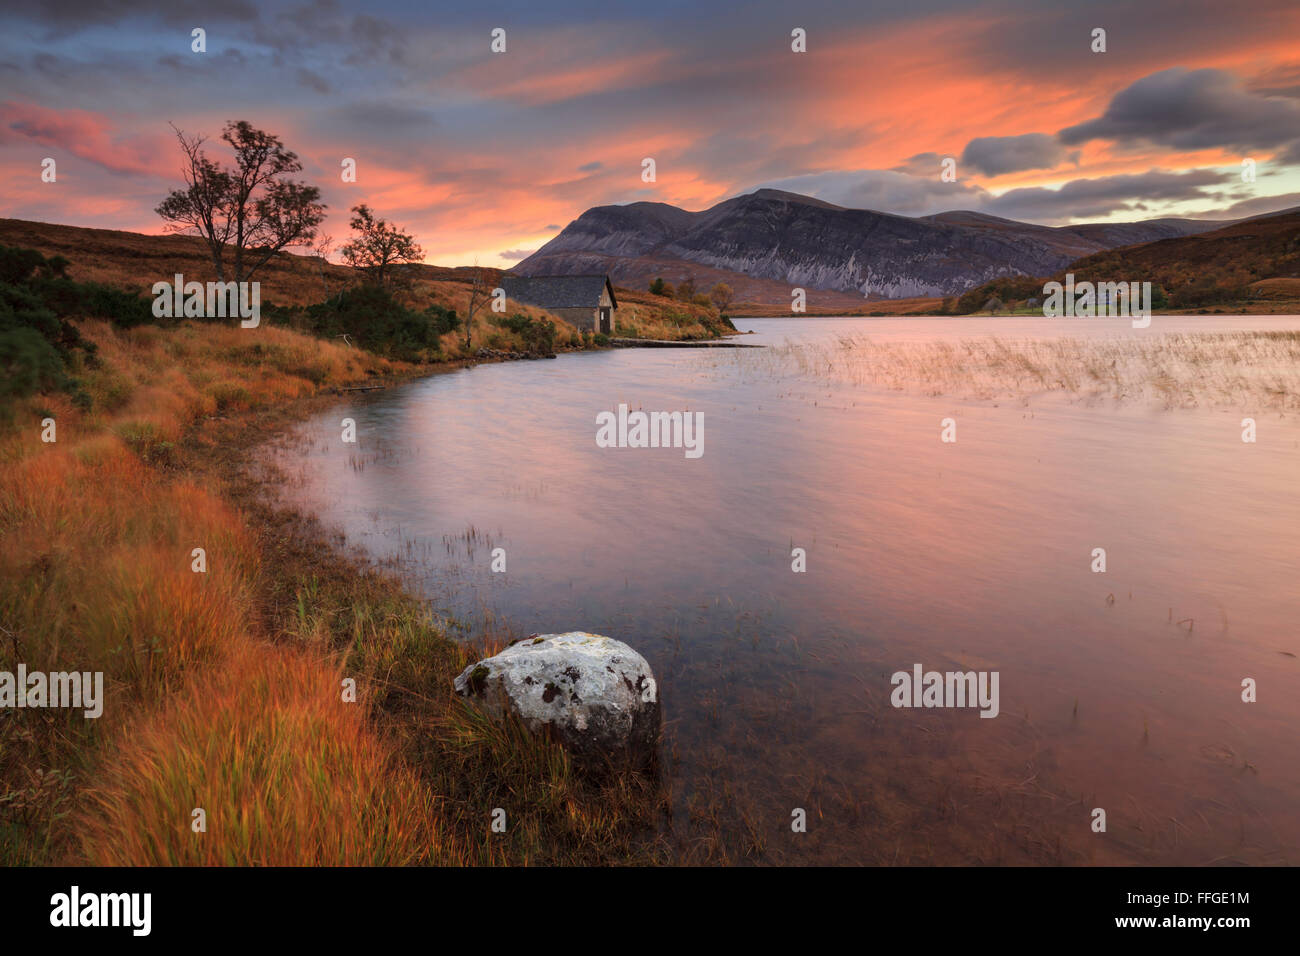 El Boathouse en el extremo sur del Loch Pila, en la North West Highlands de Escocia, capturó al amanecer a Imagen De Stock